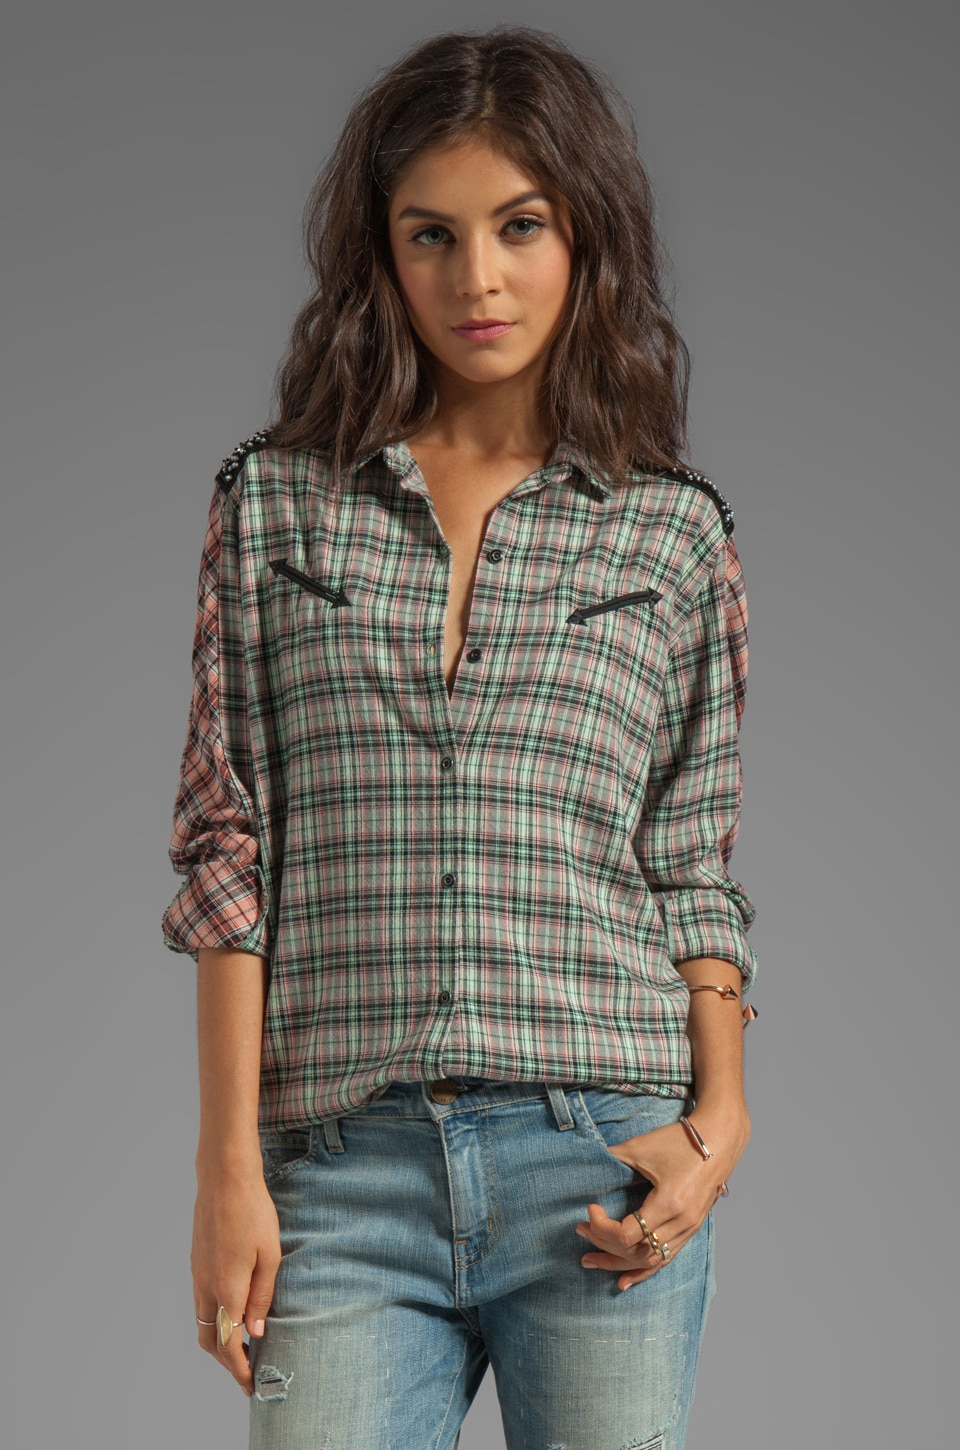 Maison Scotch Checkered Shirt in Multi Plaid